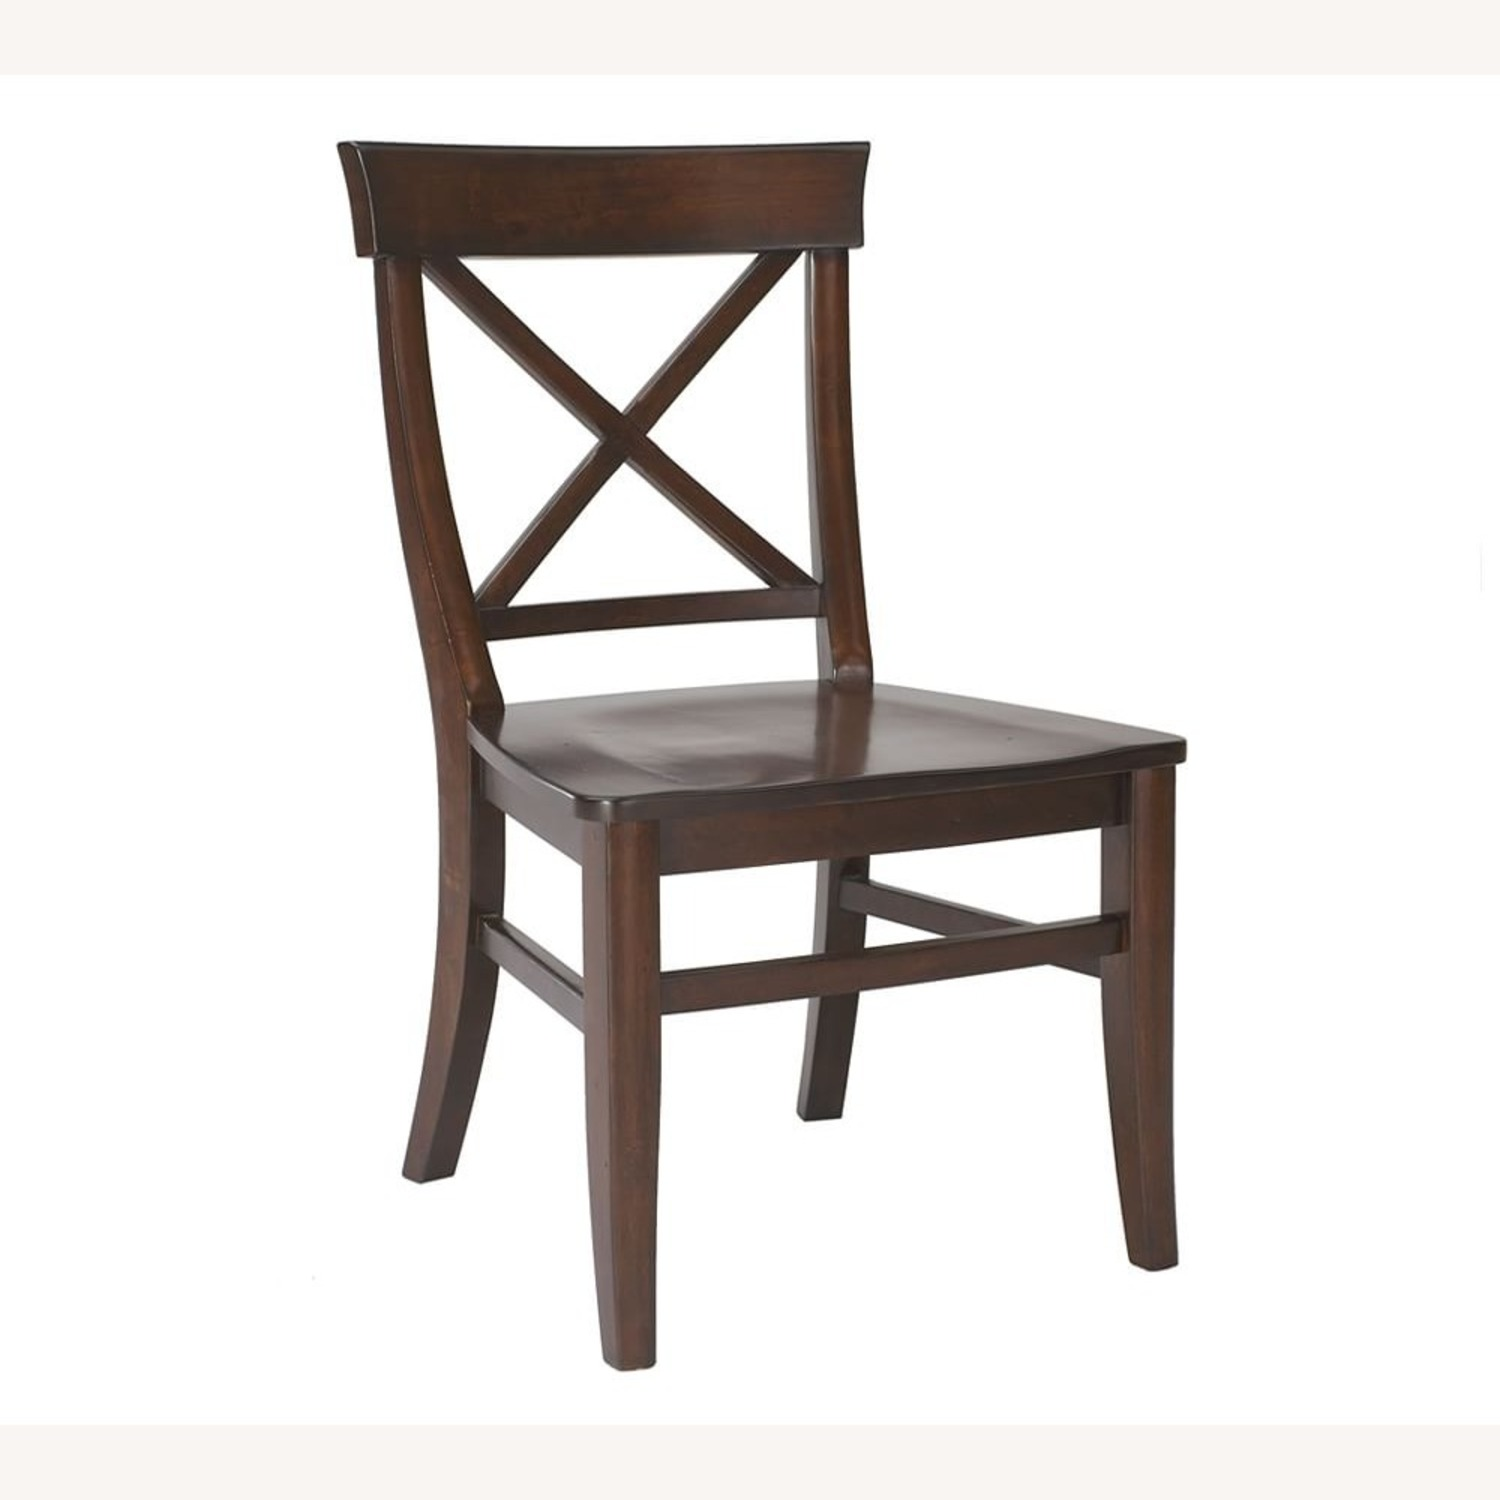 Pottery Barn Aaron Dining Side Chair  - image-1